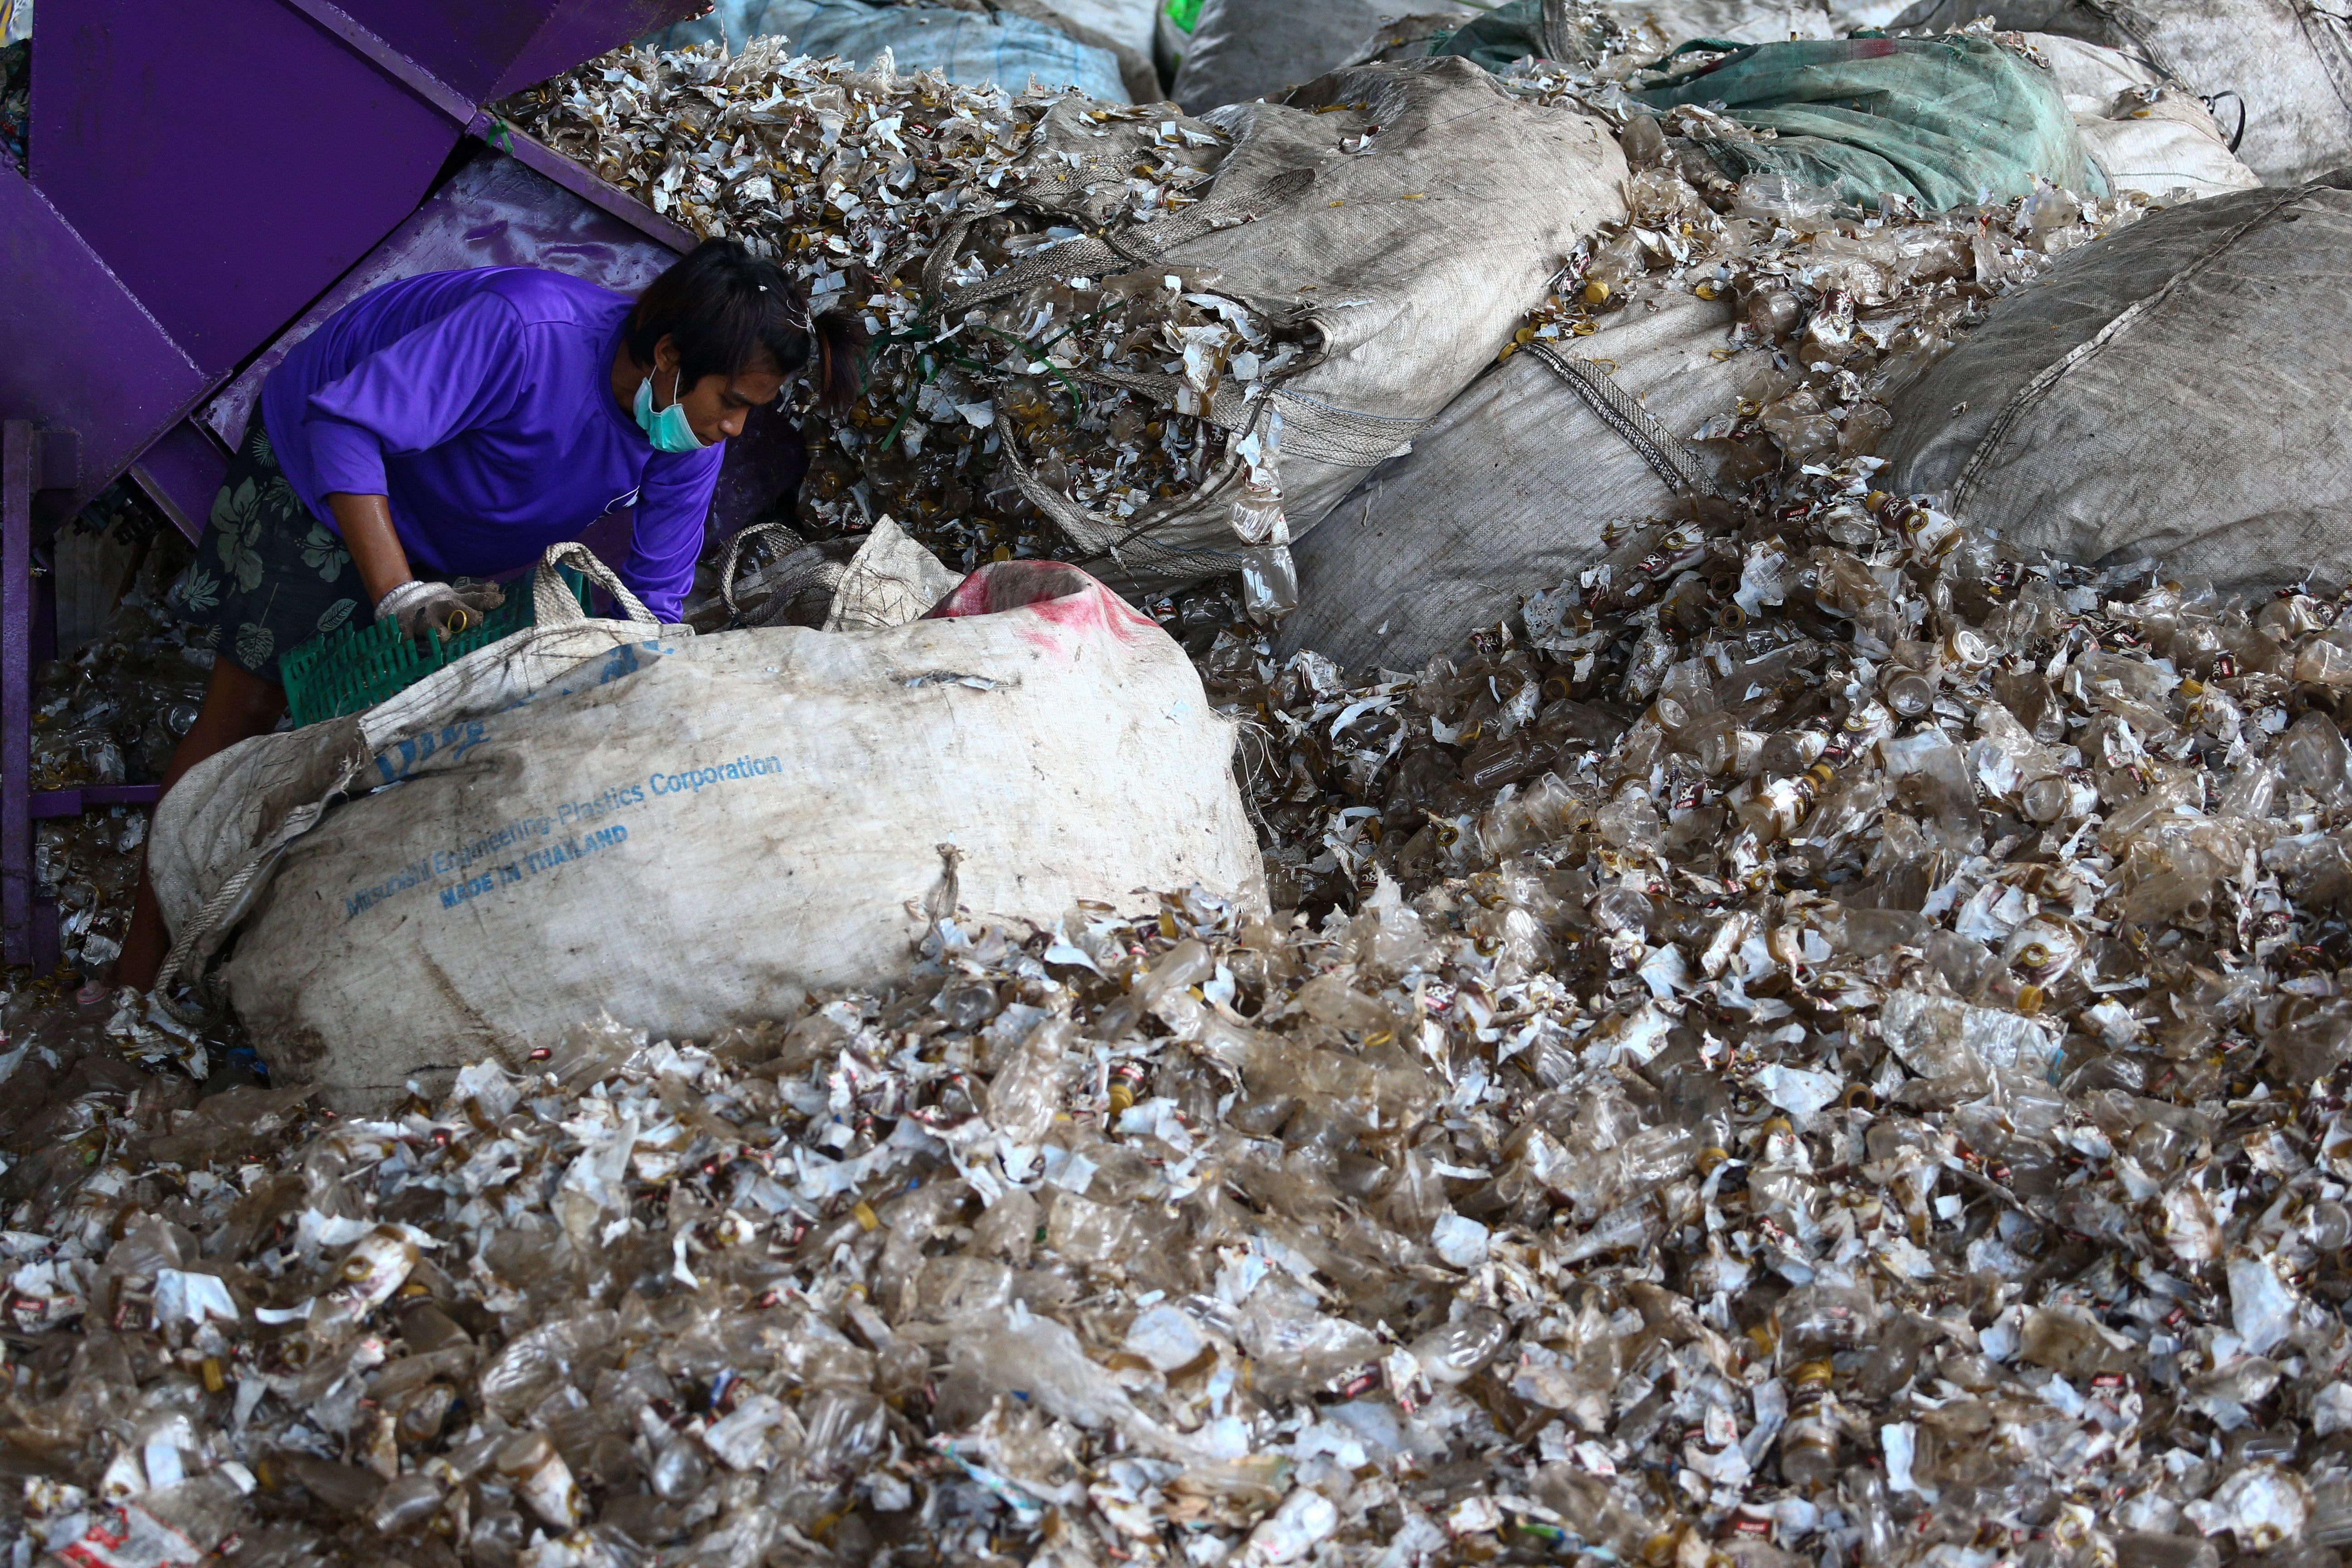 Hard Numbers: Thailand's plastic waste, 1 in 4 Americans are jobless, refugees in limbo, Europe's excess deaths